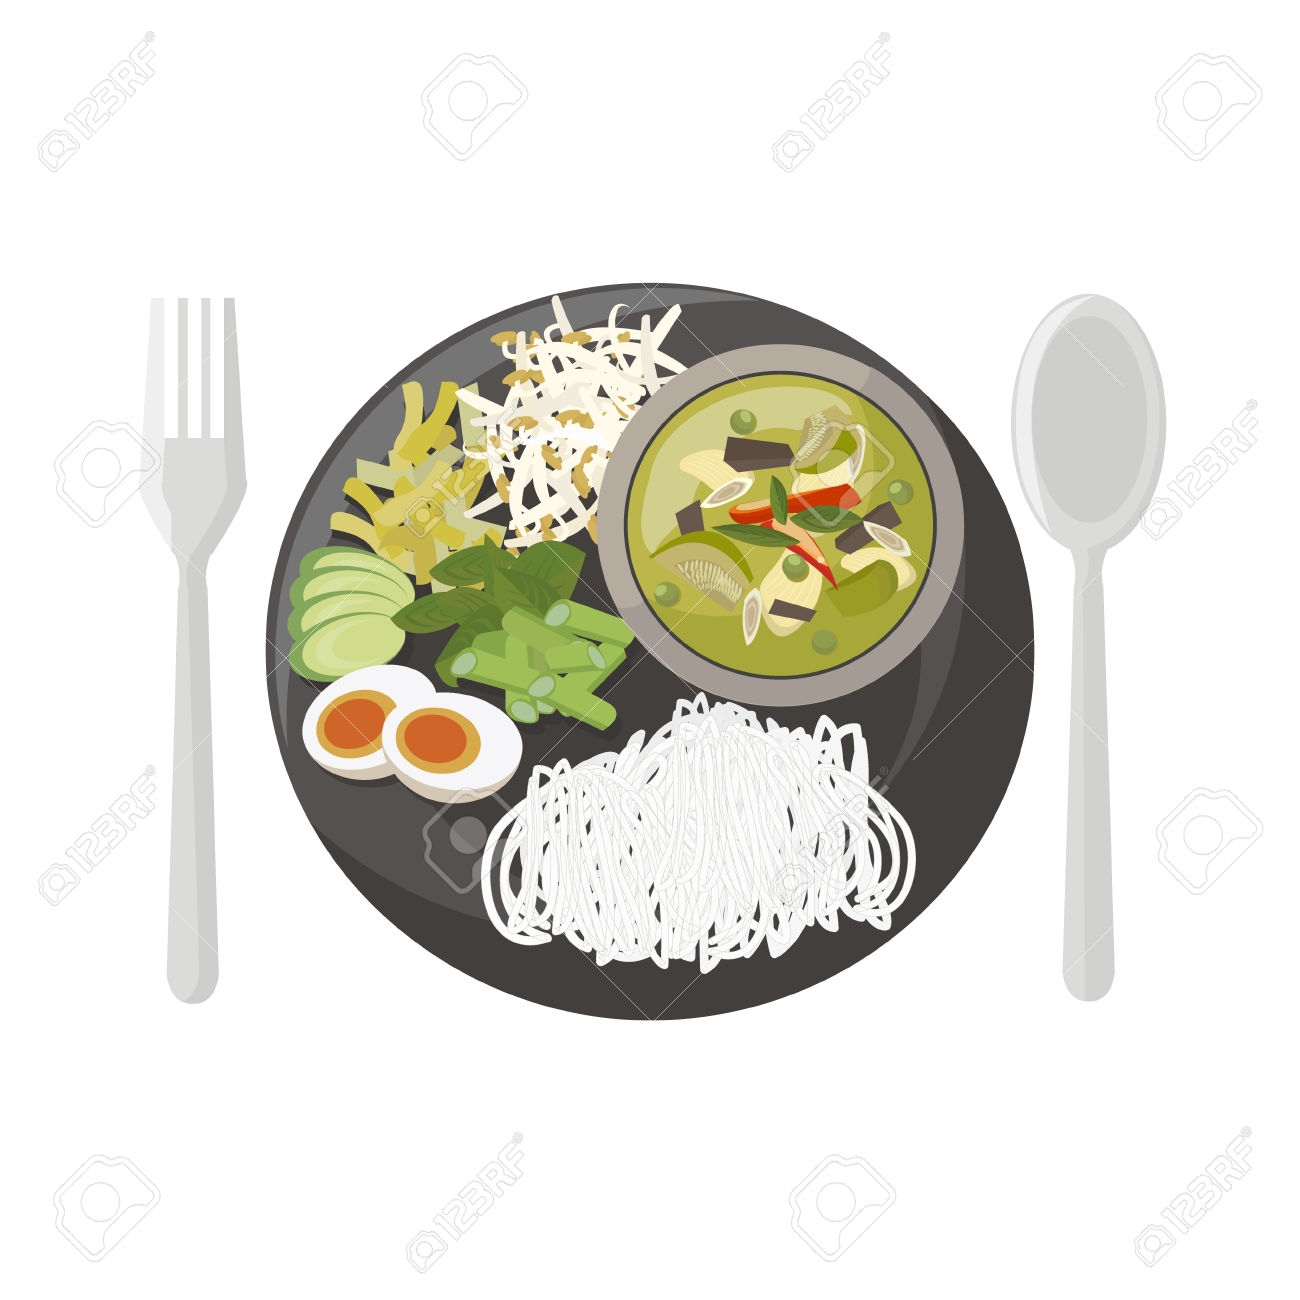 155,181 Lunch Stock Vector Illustration And Royalty Free Lunch Clipart.